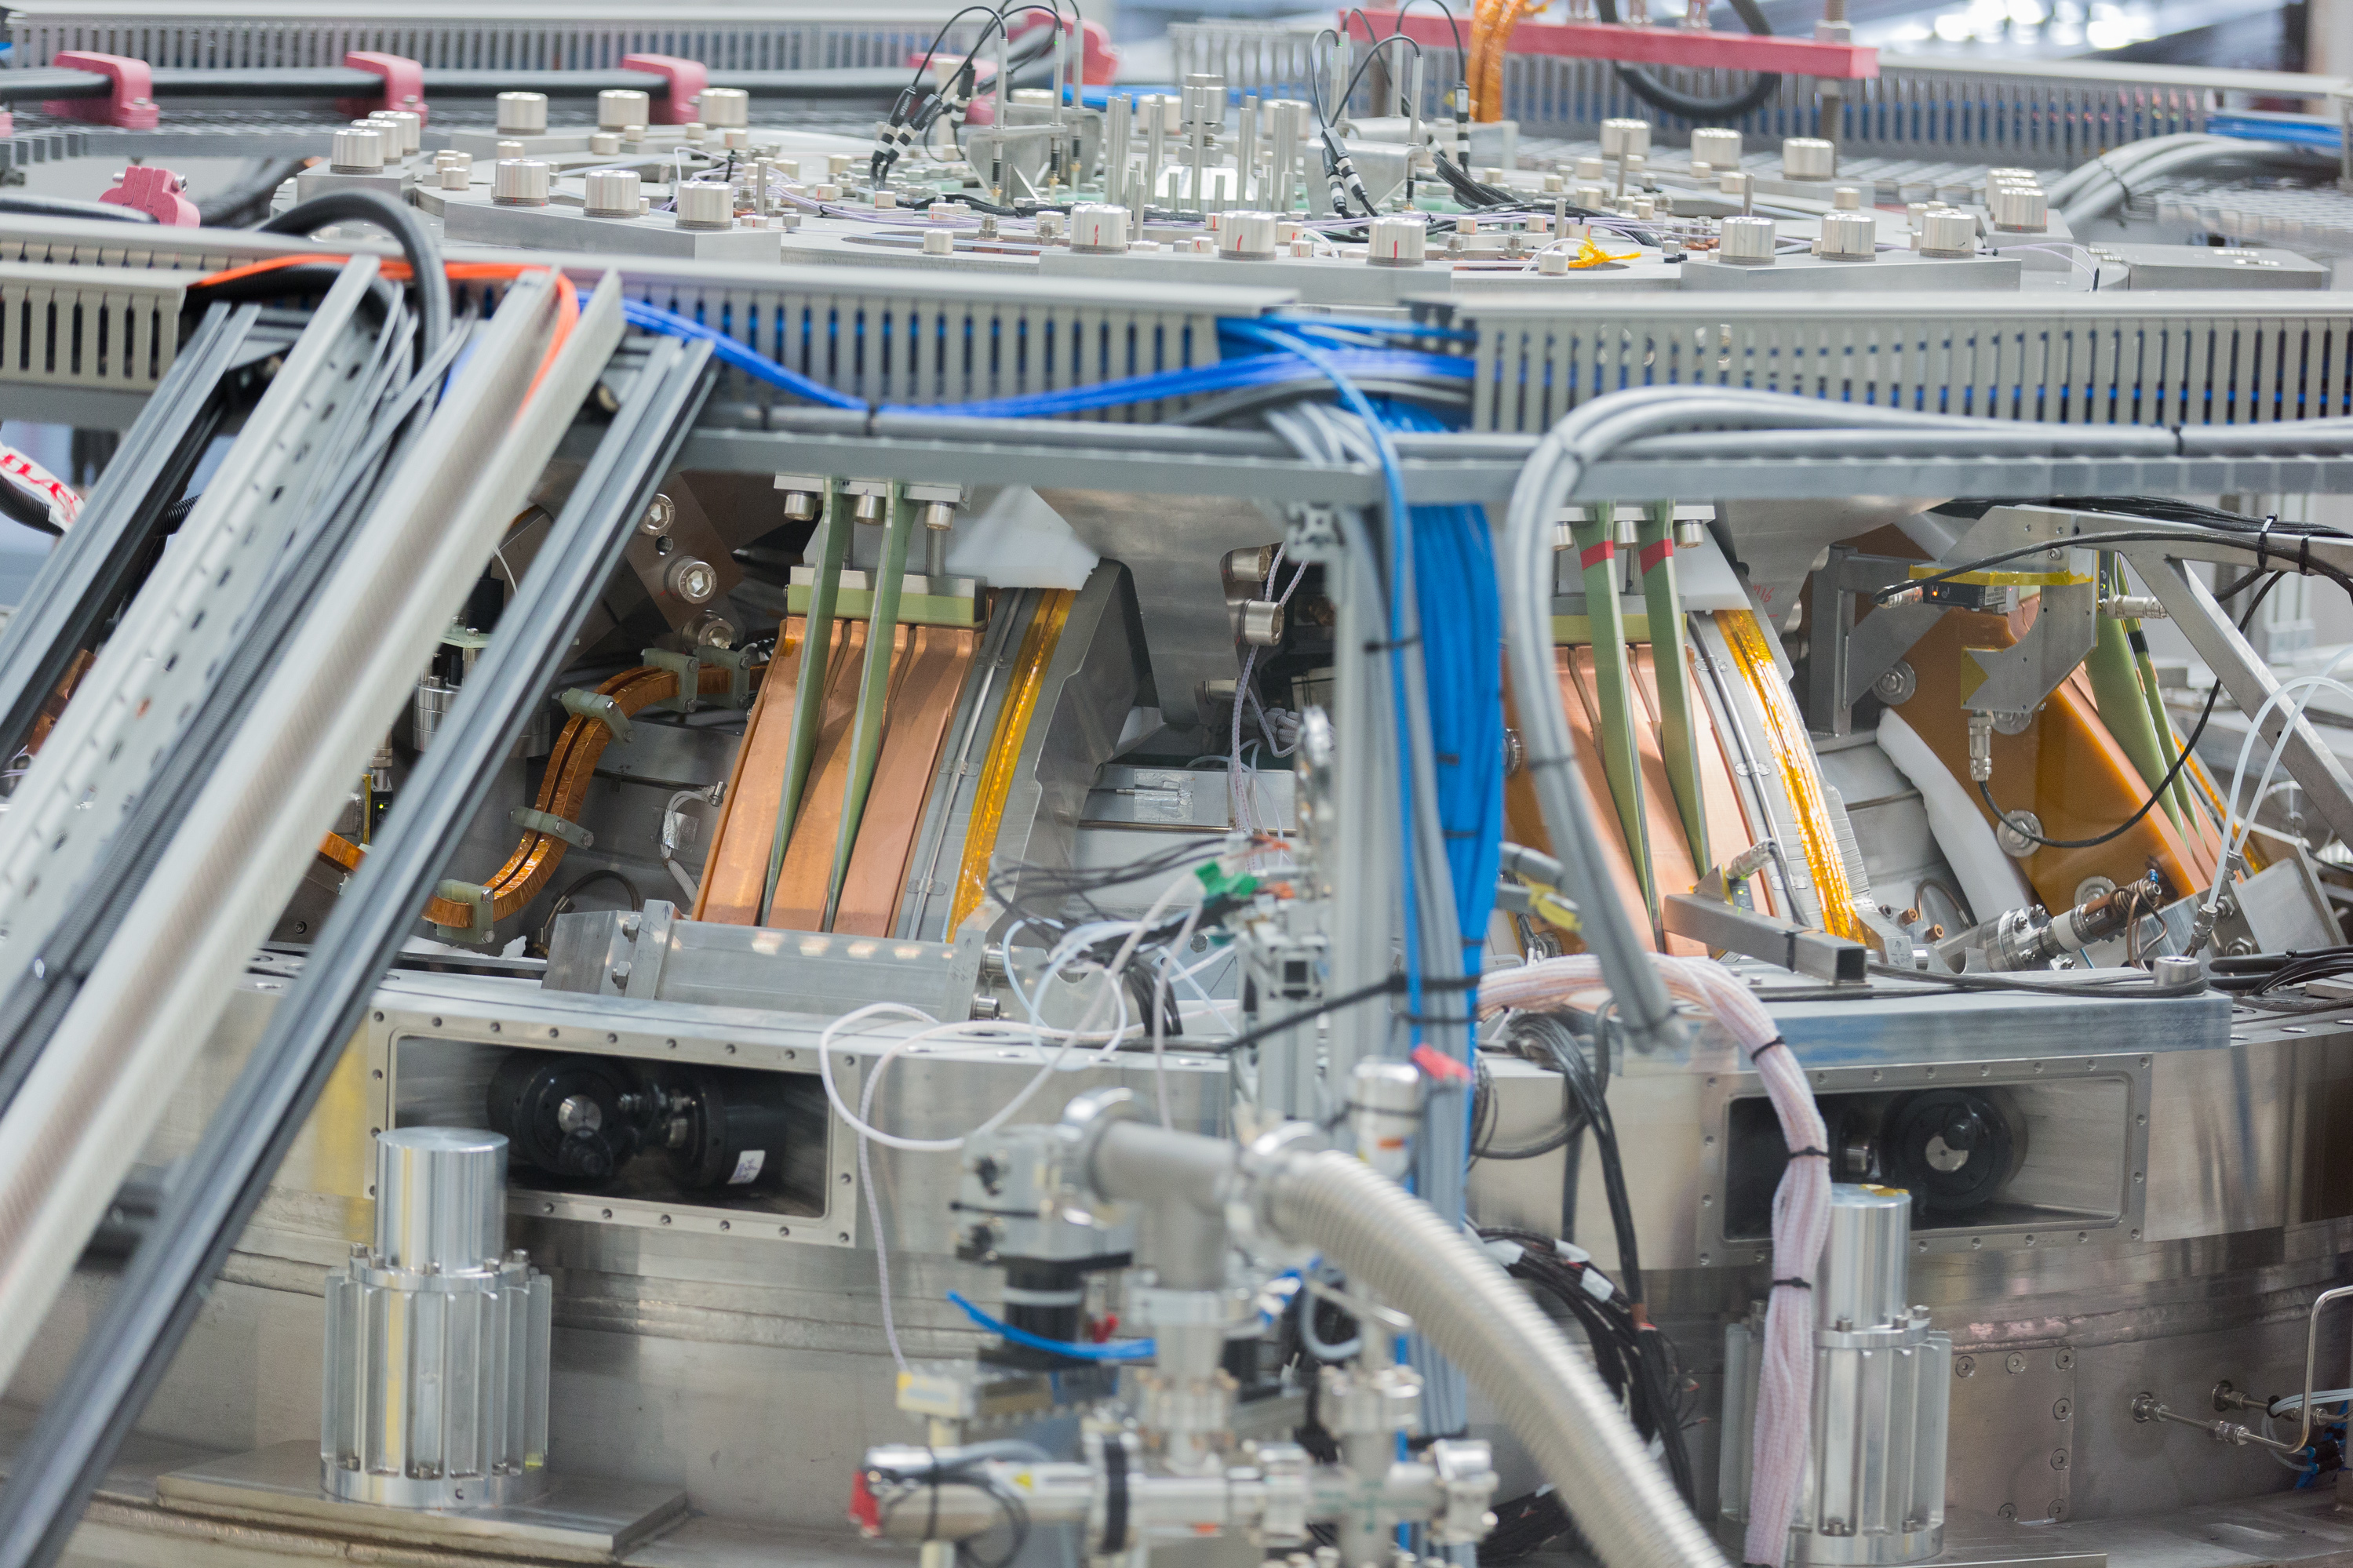 New Analysis Promises Accelerated Development Of Fusion Power